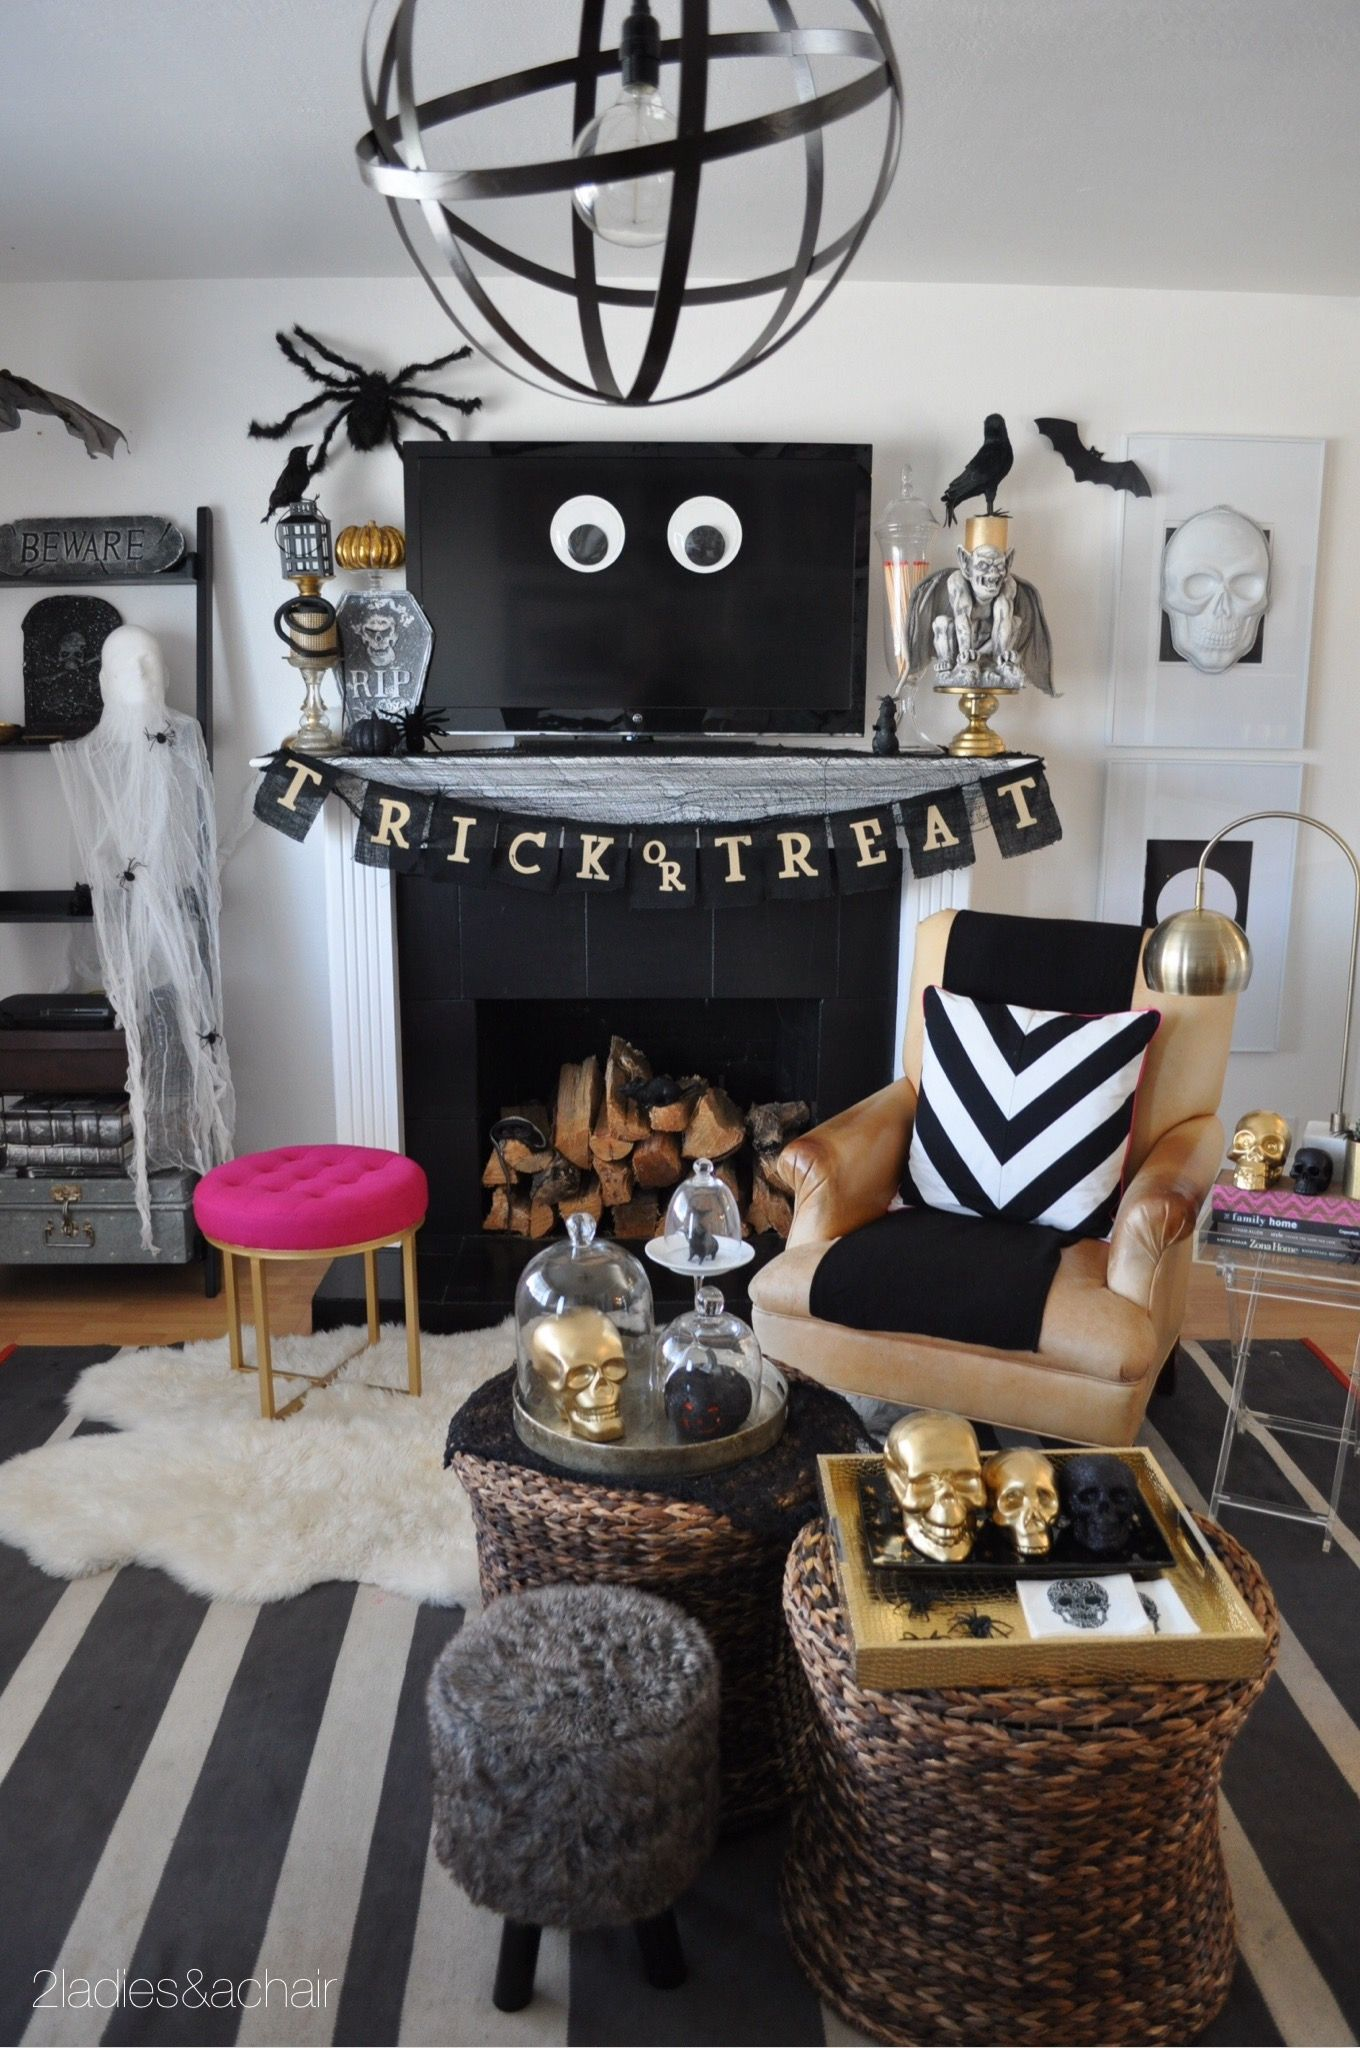 How To Create A Haunted Home For Halloween (With Images